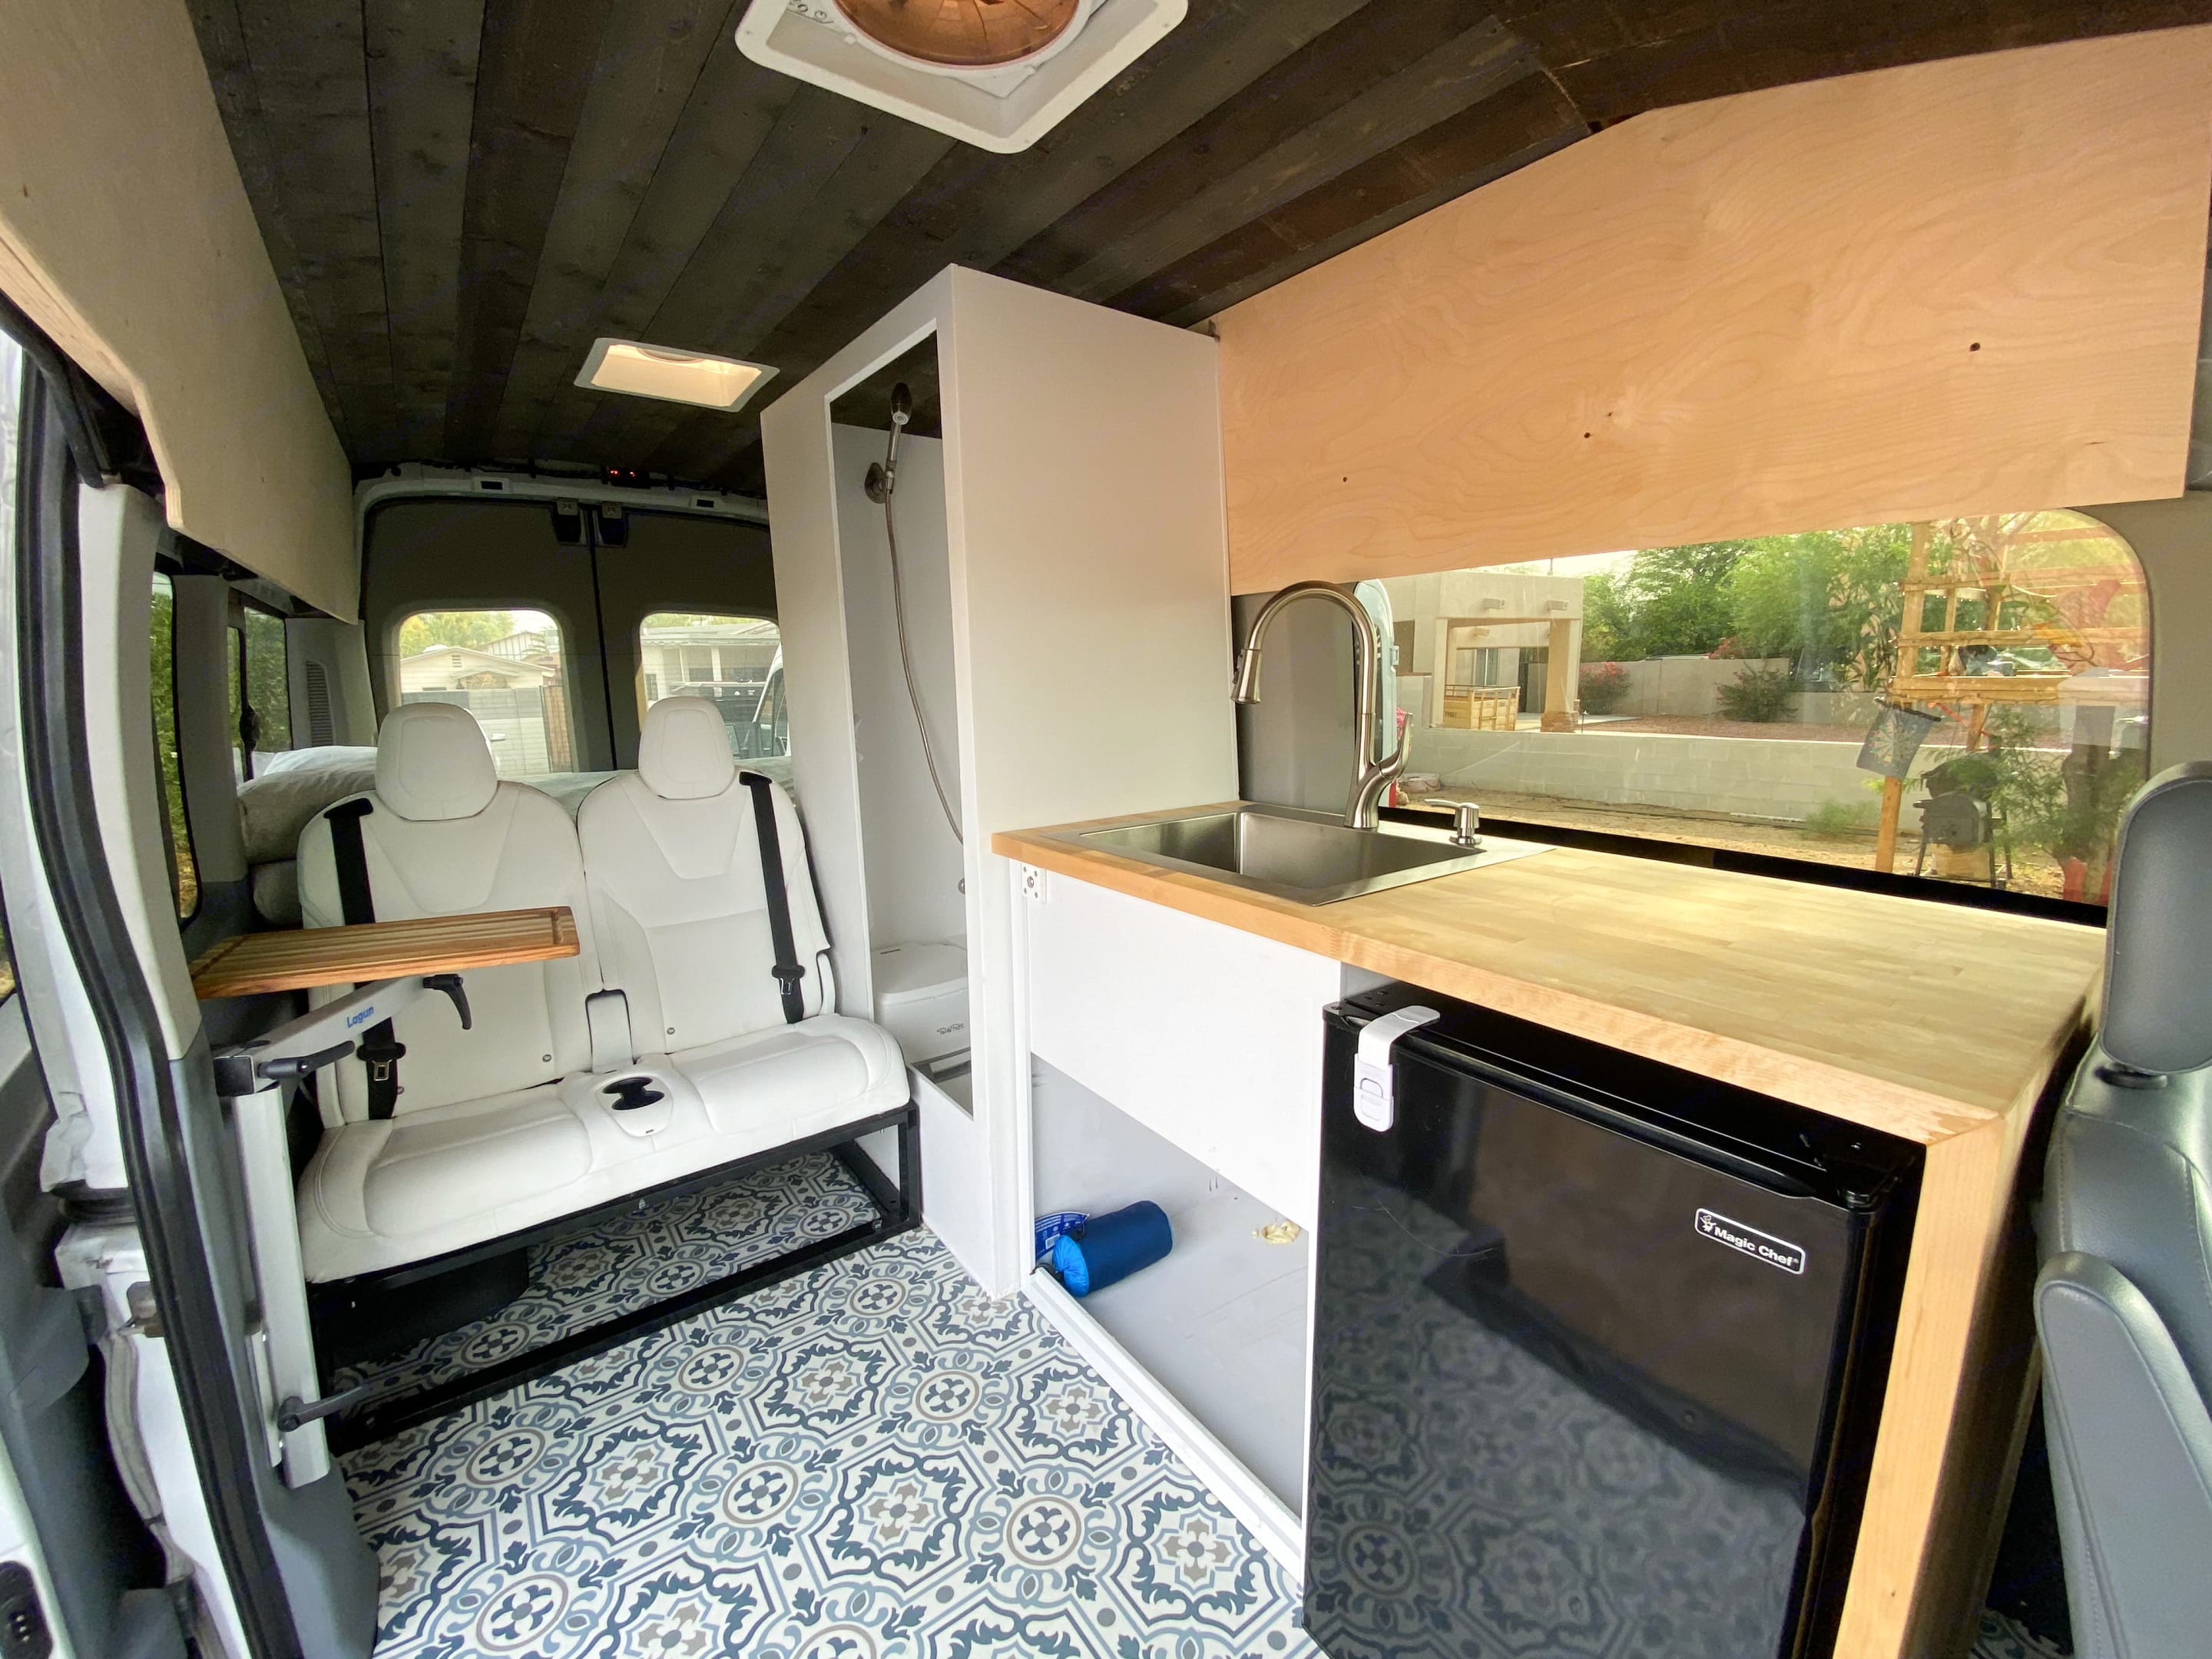 Butcher Block Counter, Large Sink, Indoor Shower, and more. Ford Transit 350 HD 2017